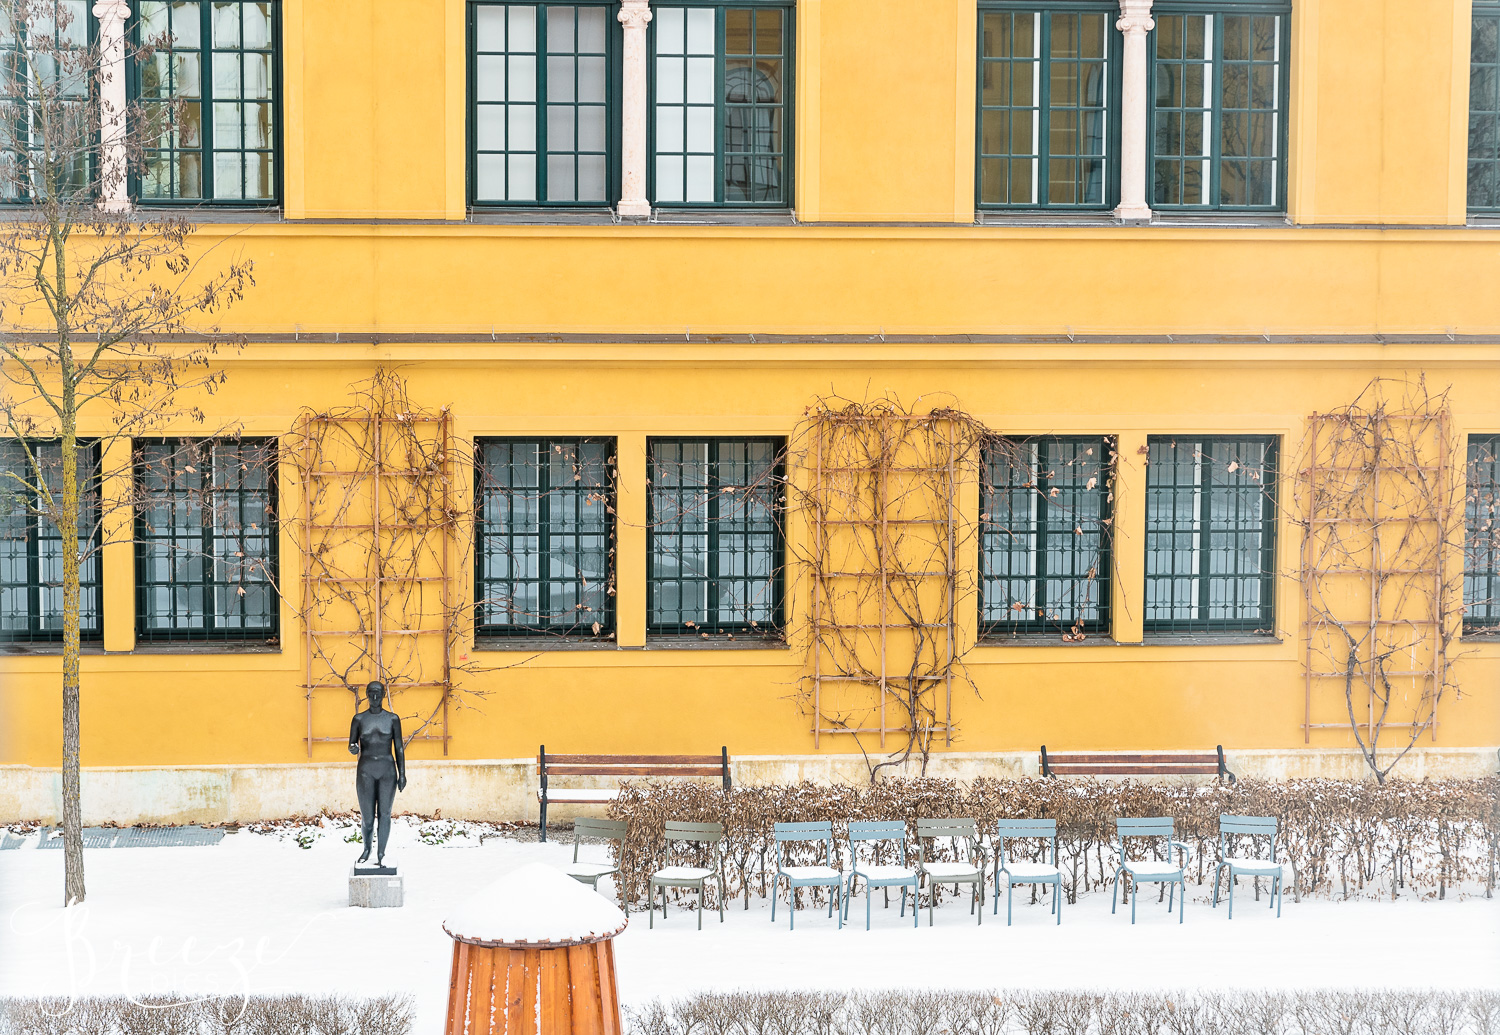 Munich in winter limited edition home decor photography, Bernadette Meyers